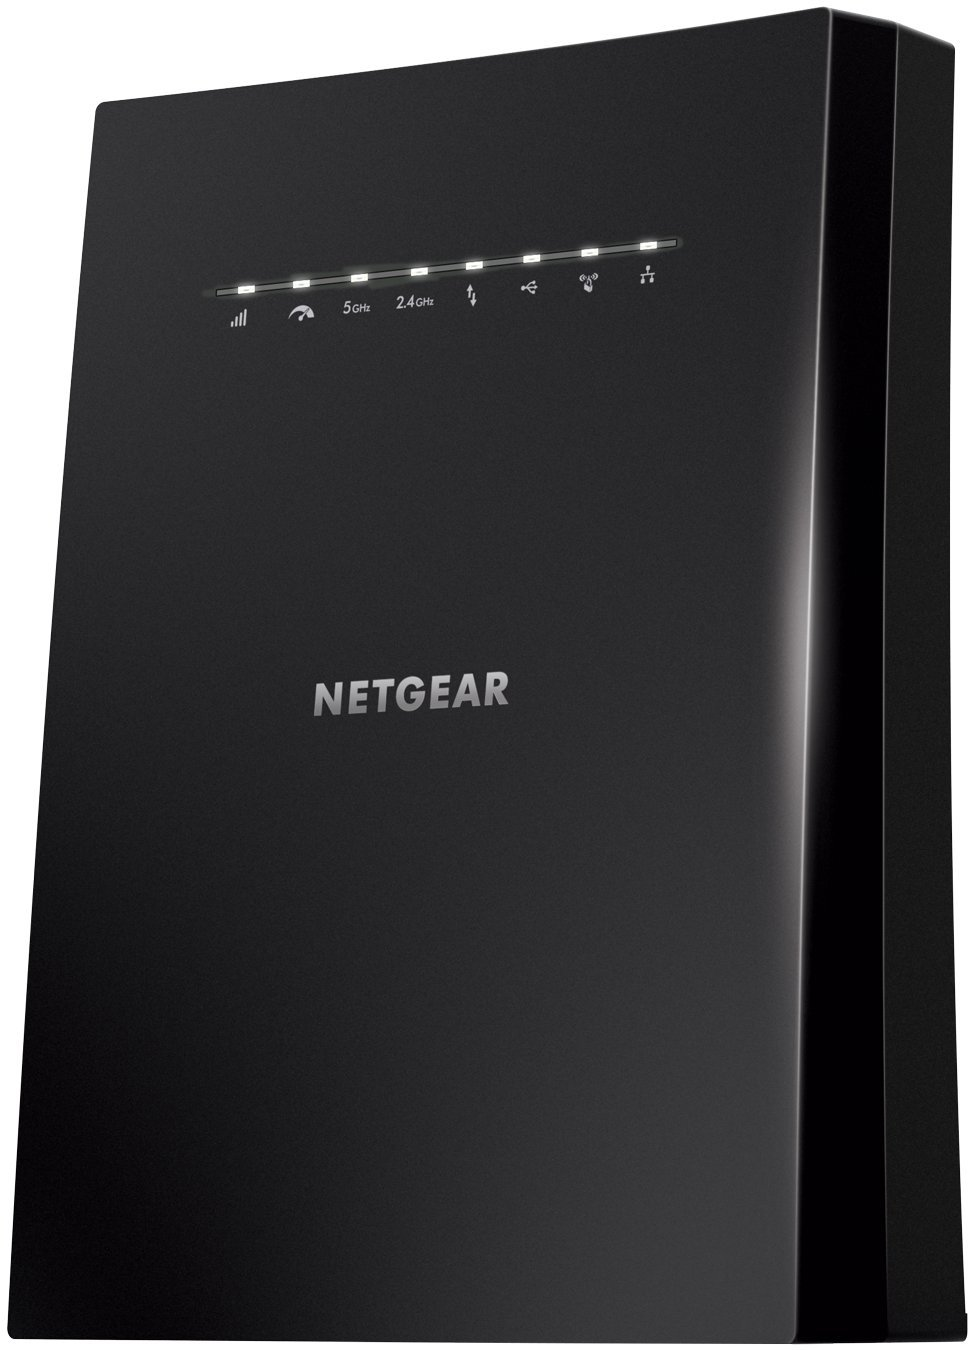 NETGEAR Nighthawk Mesh X6S Tri-Band WiFi Mesh Extender, Seamless Roaming, One WiFi